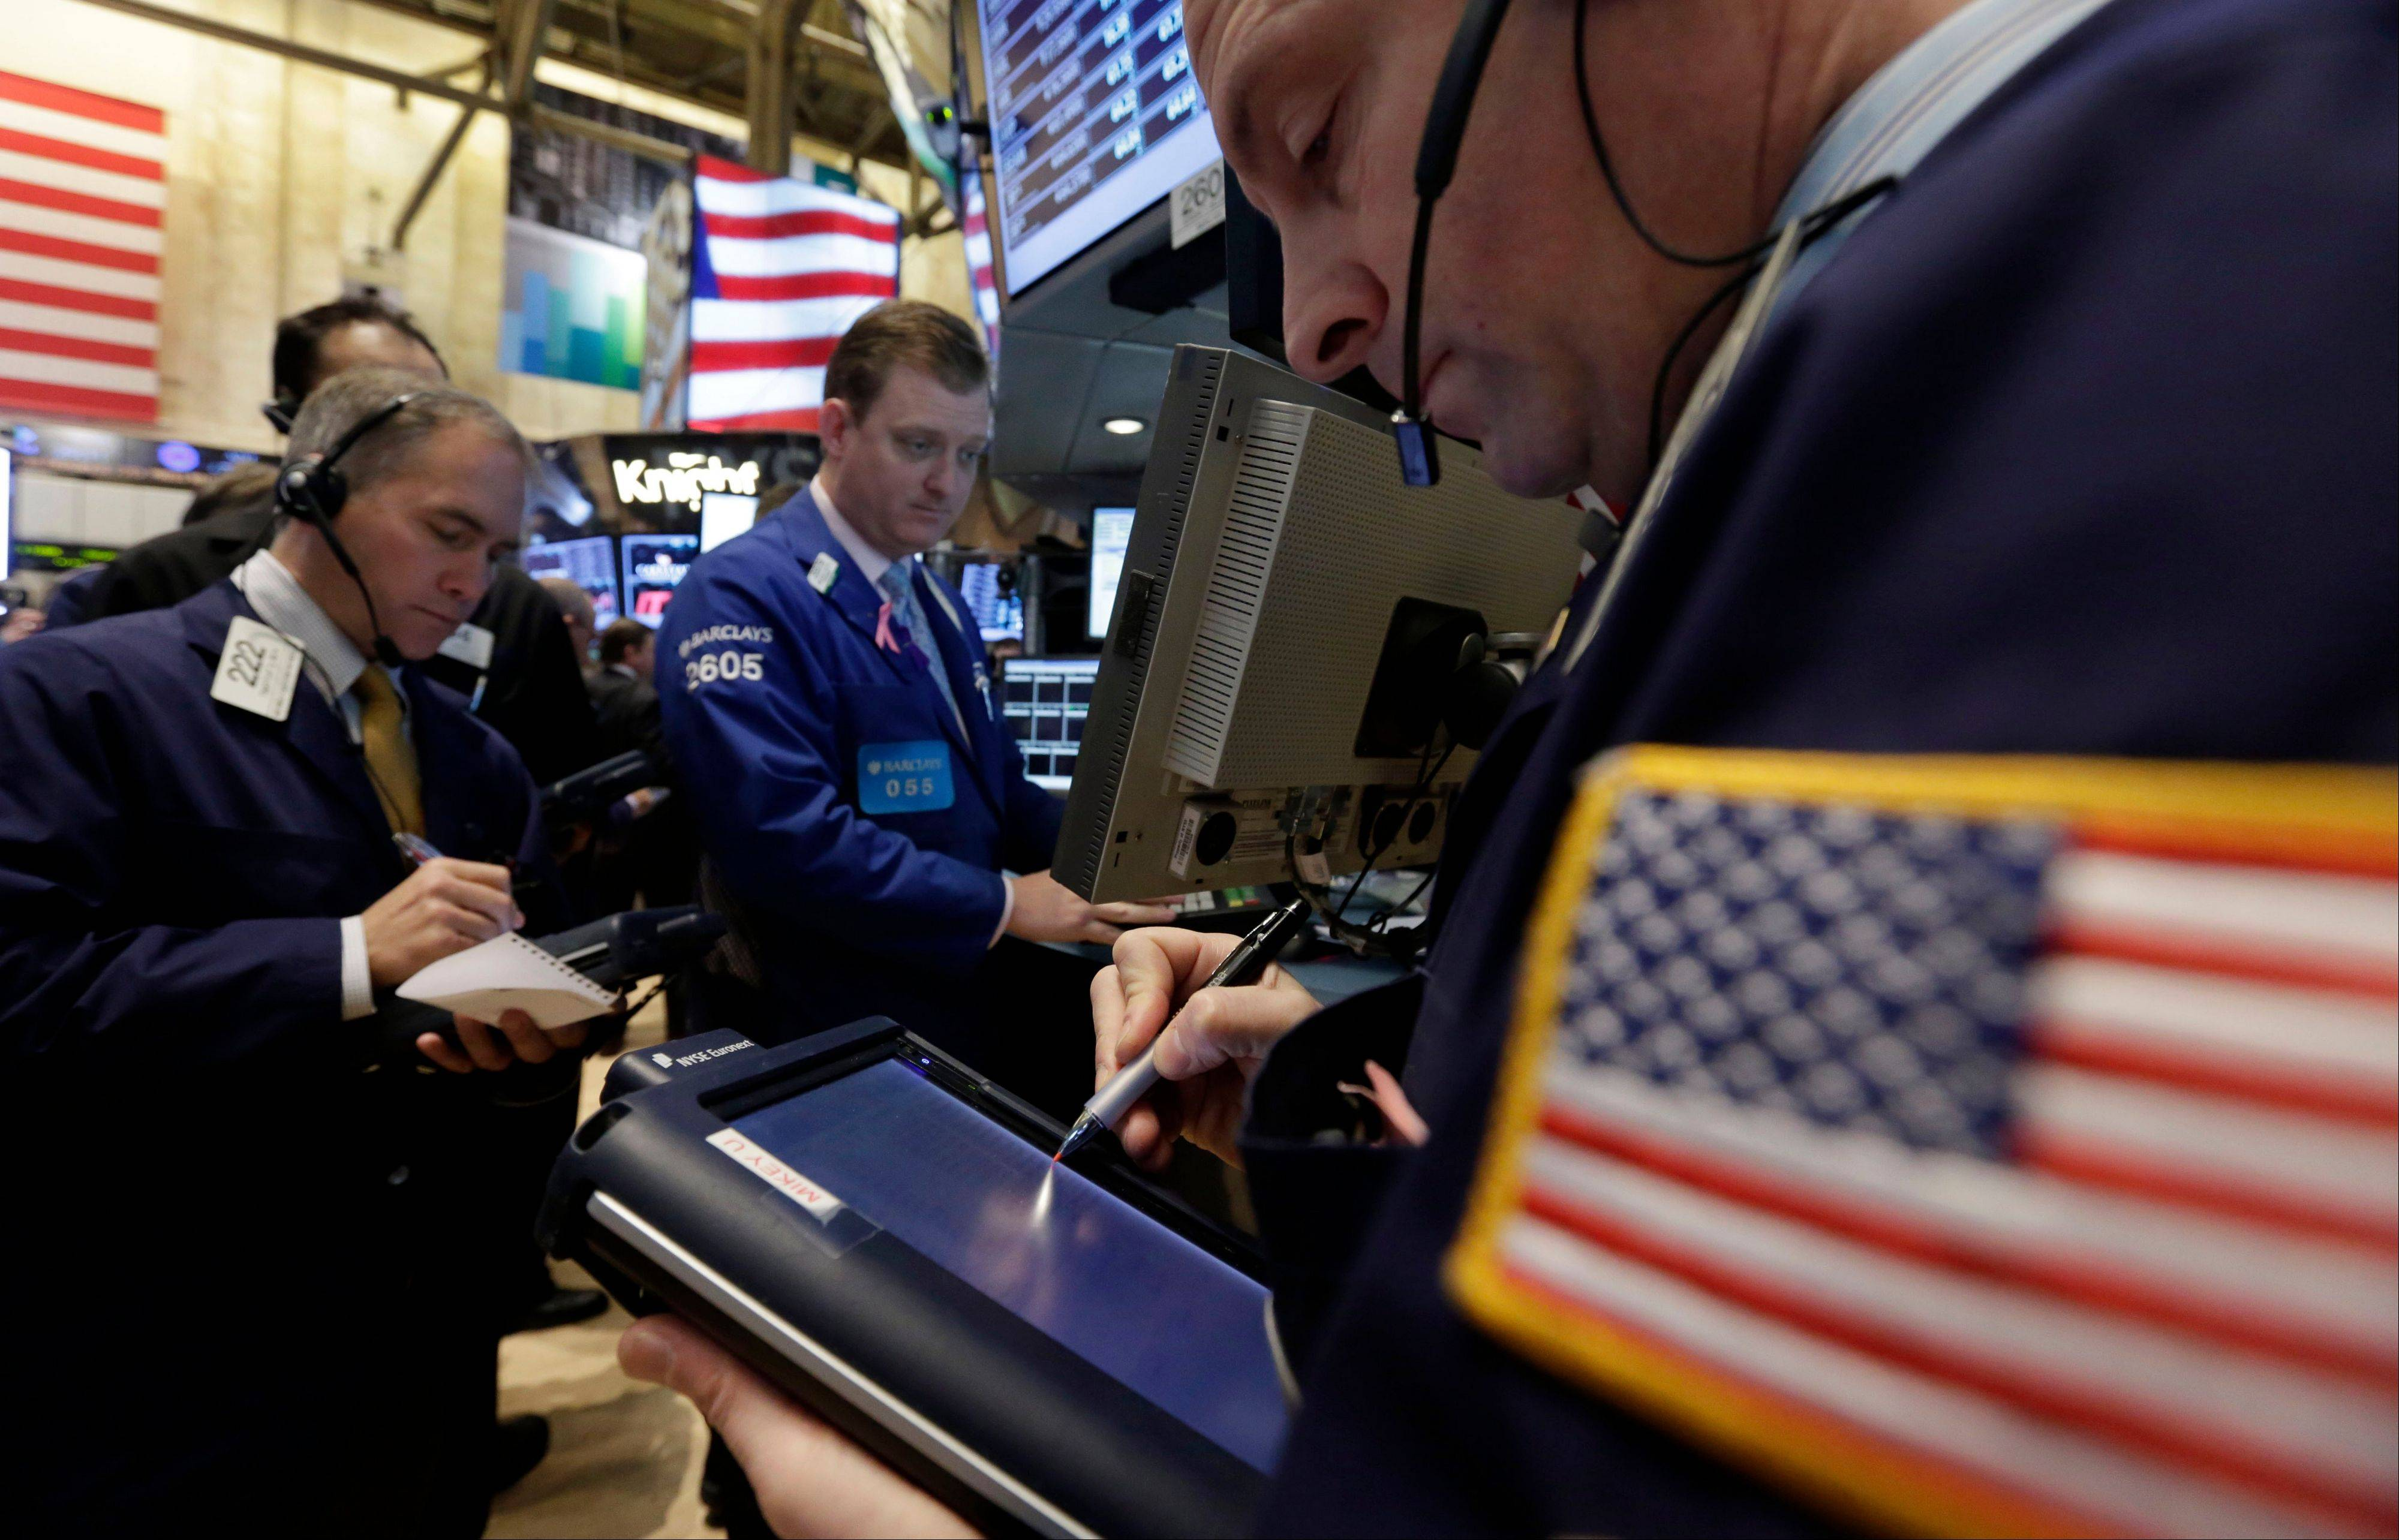 Sstocks rose, after benchmark indexes reached five-year highs, as lawmakers voted to temporarily suspend the federal debt limit and technology stocks rallied amid better-than-forecast earnings.